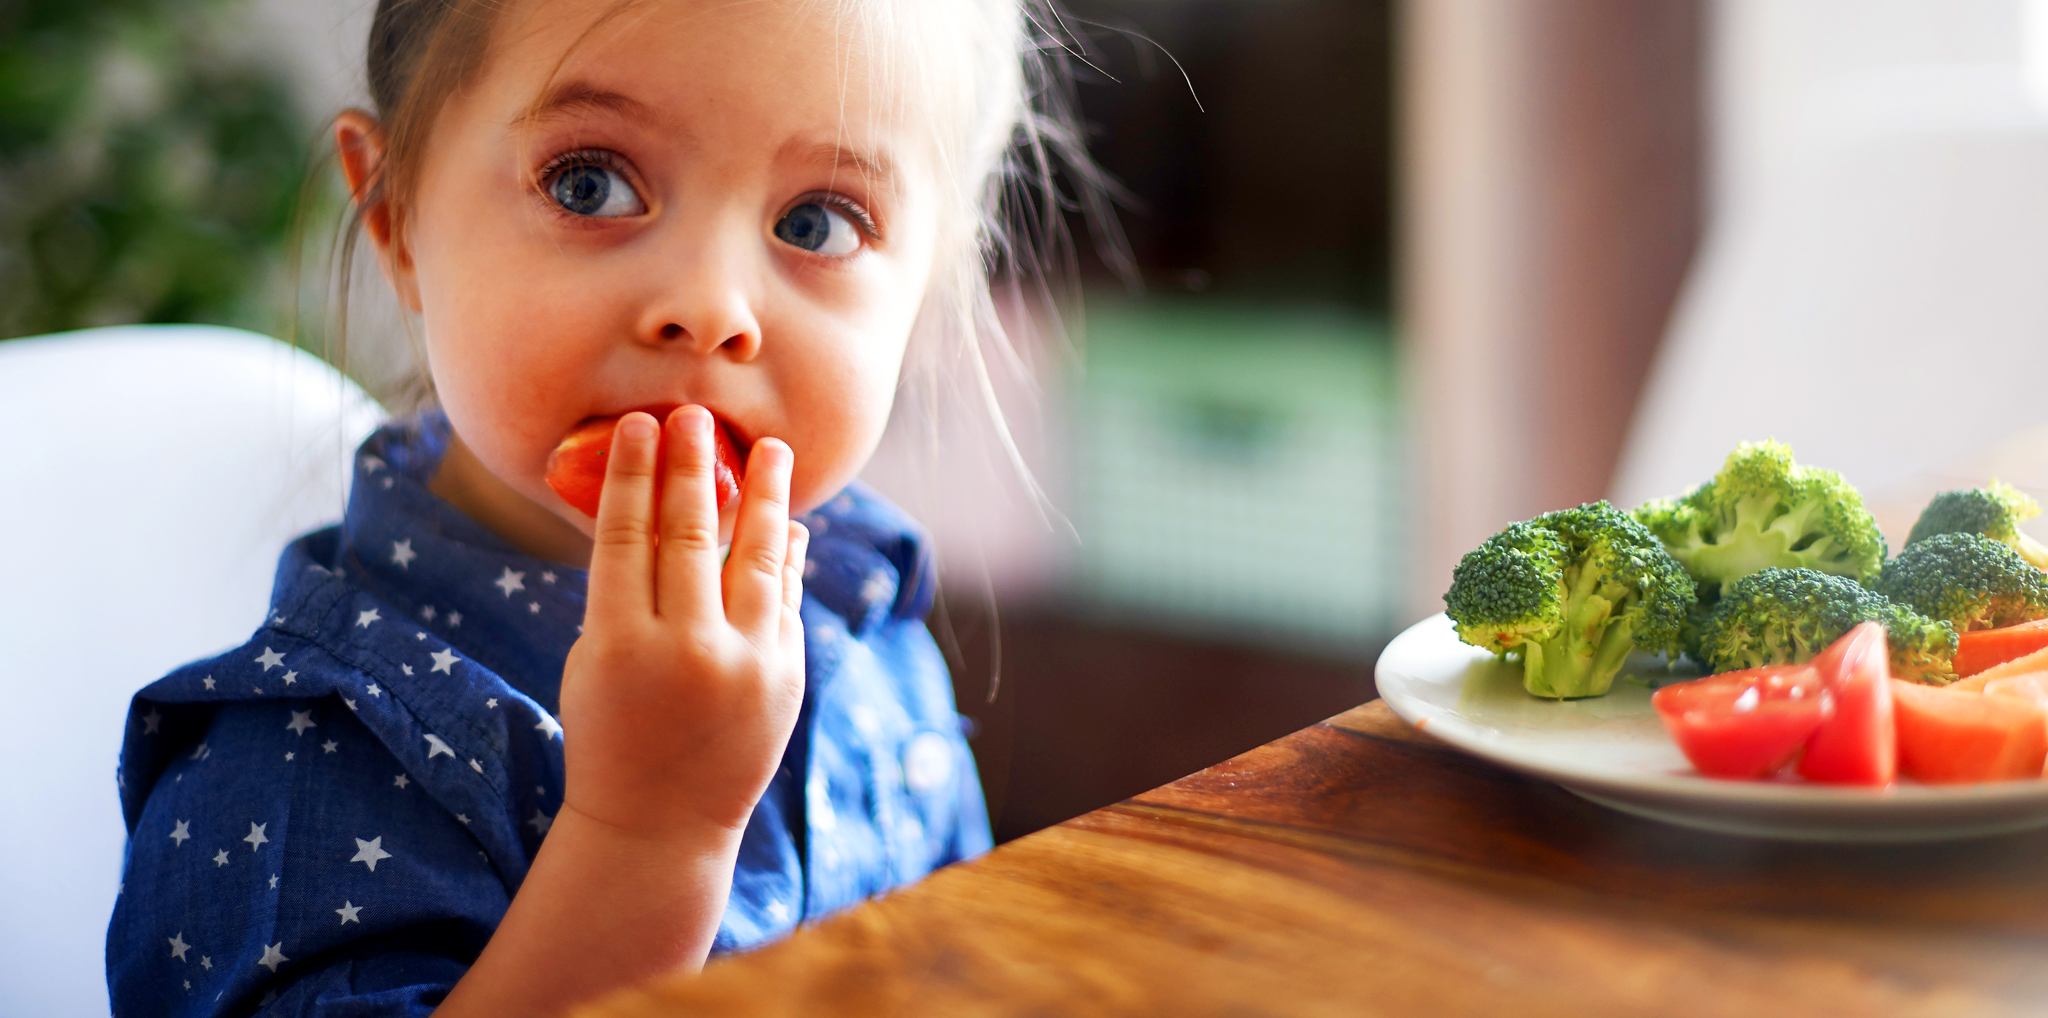 Causes-For-Child-MisBehavior-Diets-Food-Sensitivities.jpg